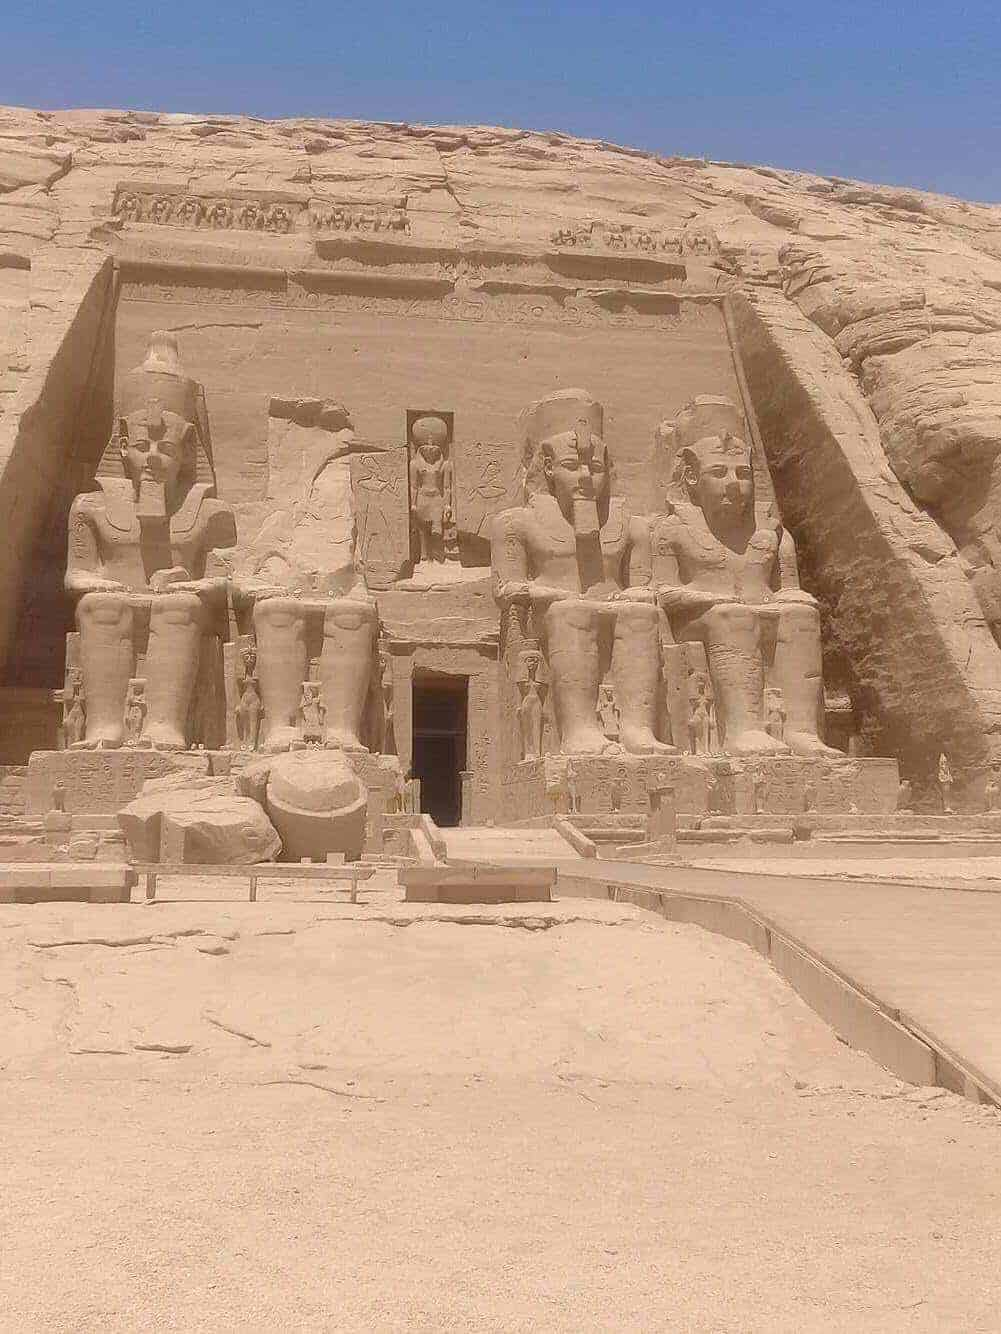 The Amazing Abu Simbel Temple